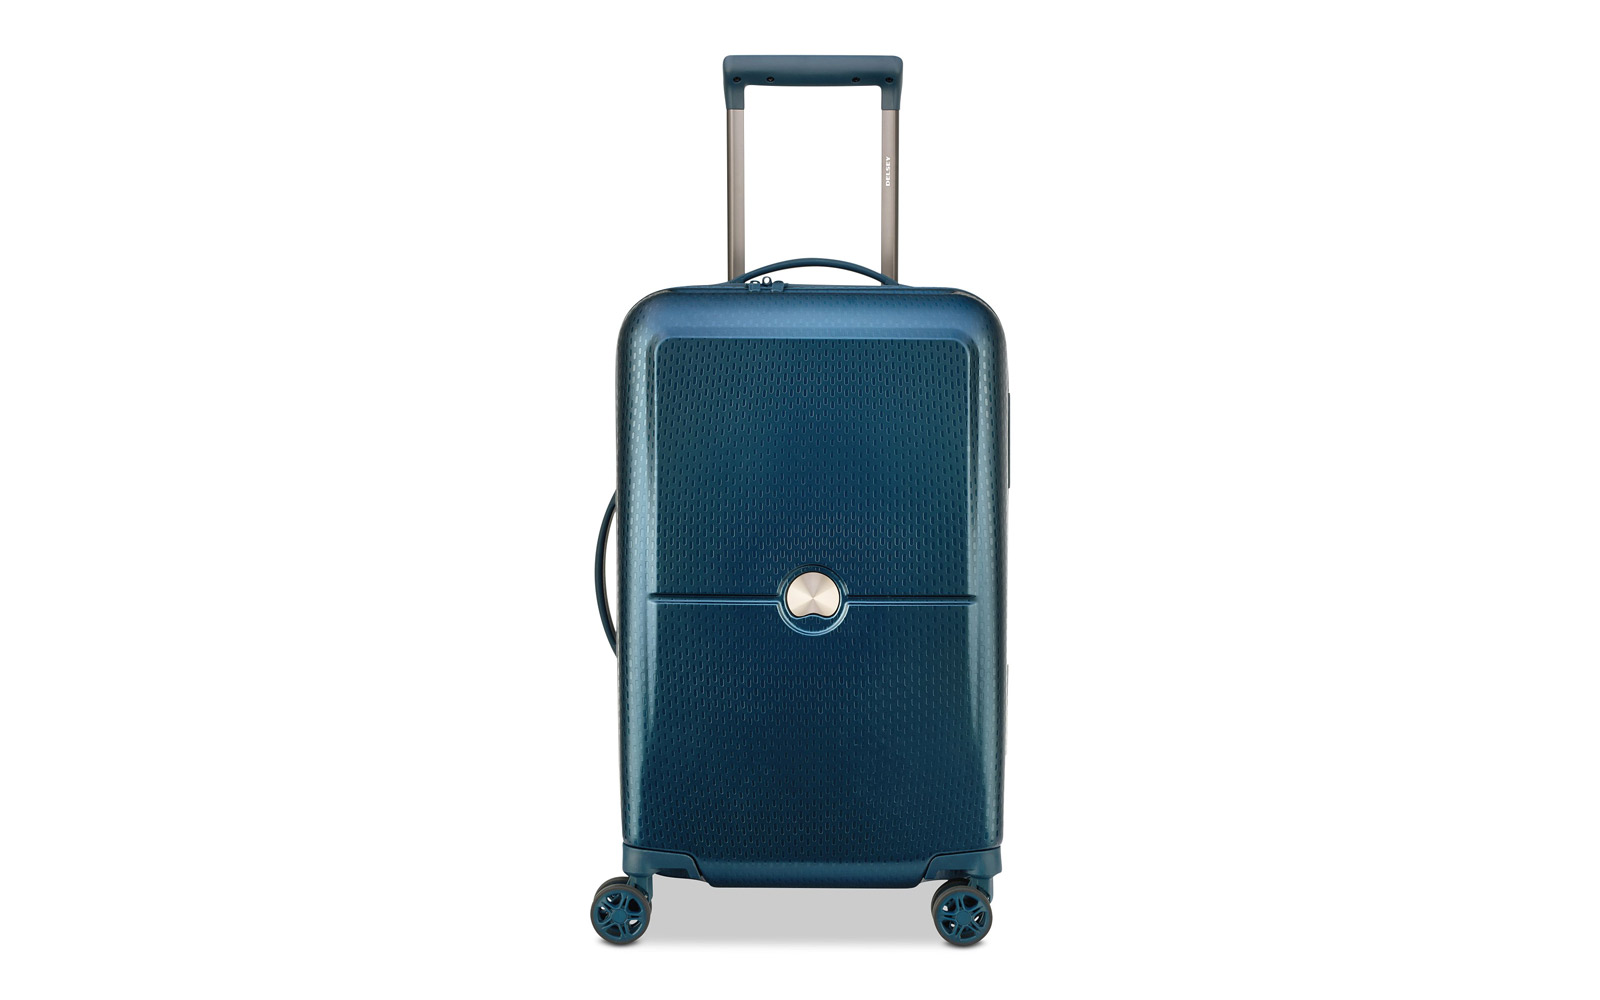 Best Lightweight Carry-on: Delsey Turenne International Carry-on Hardside Spinner Suitcase